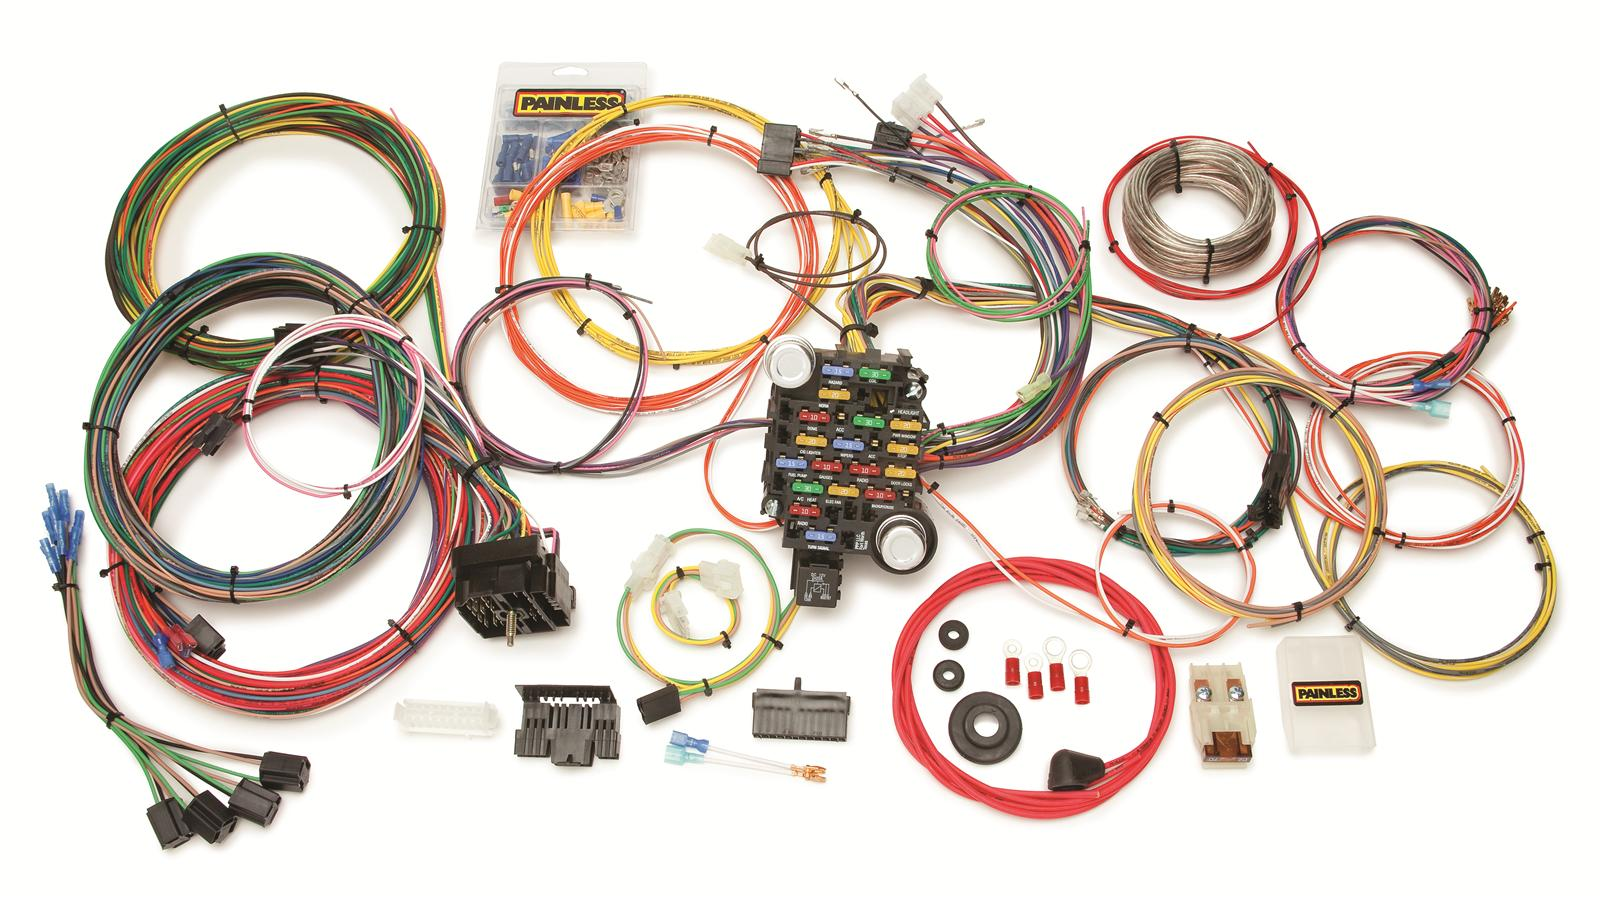 painless performance gmc/chevy truck harnesses 10205 - free shipping on  orders over $99 at summit racing